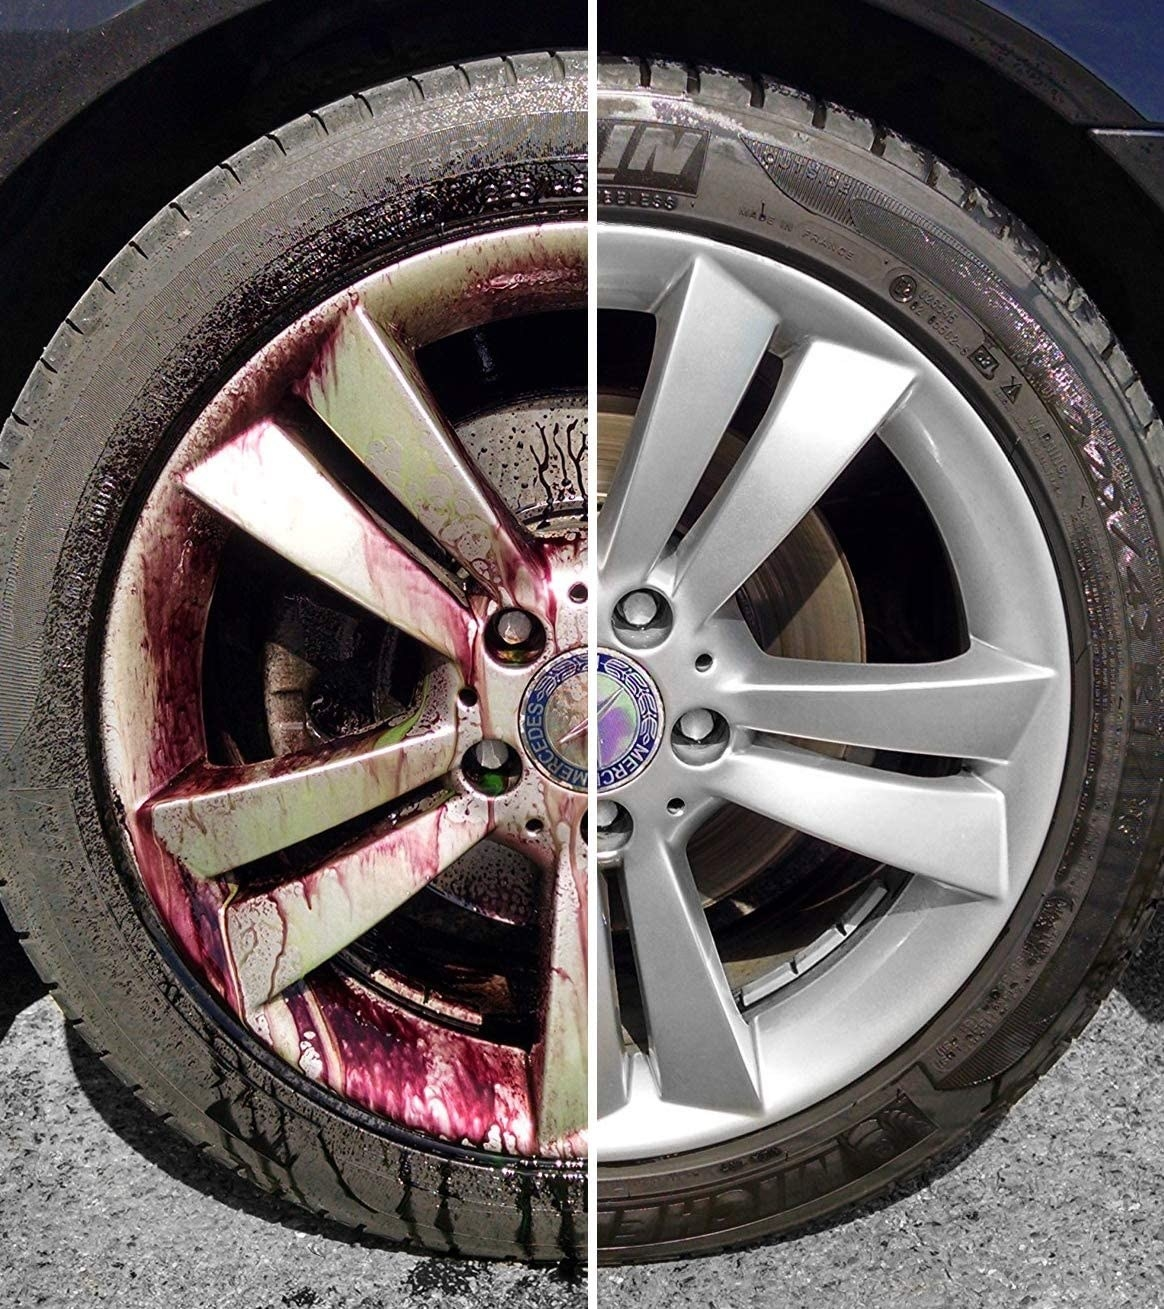 A before and after image of a dirty hubcap becoming clean after using the product